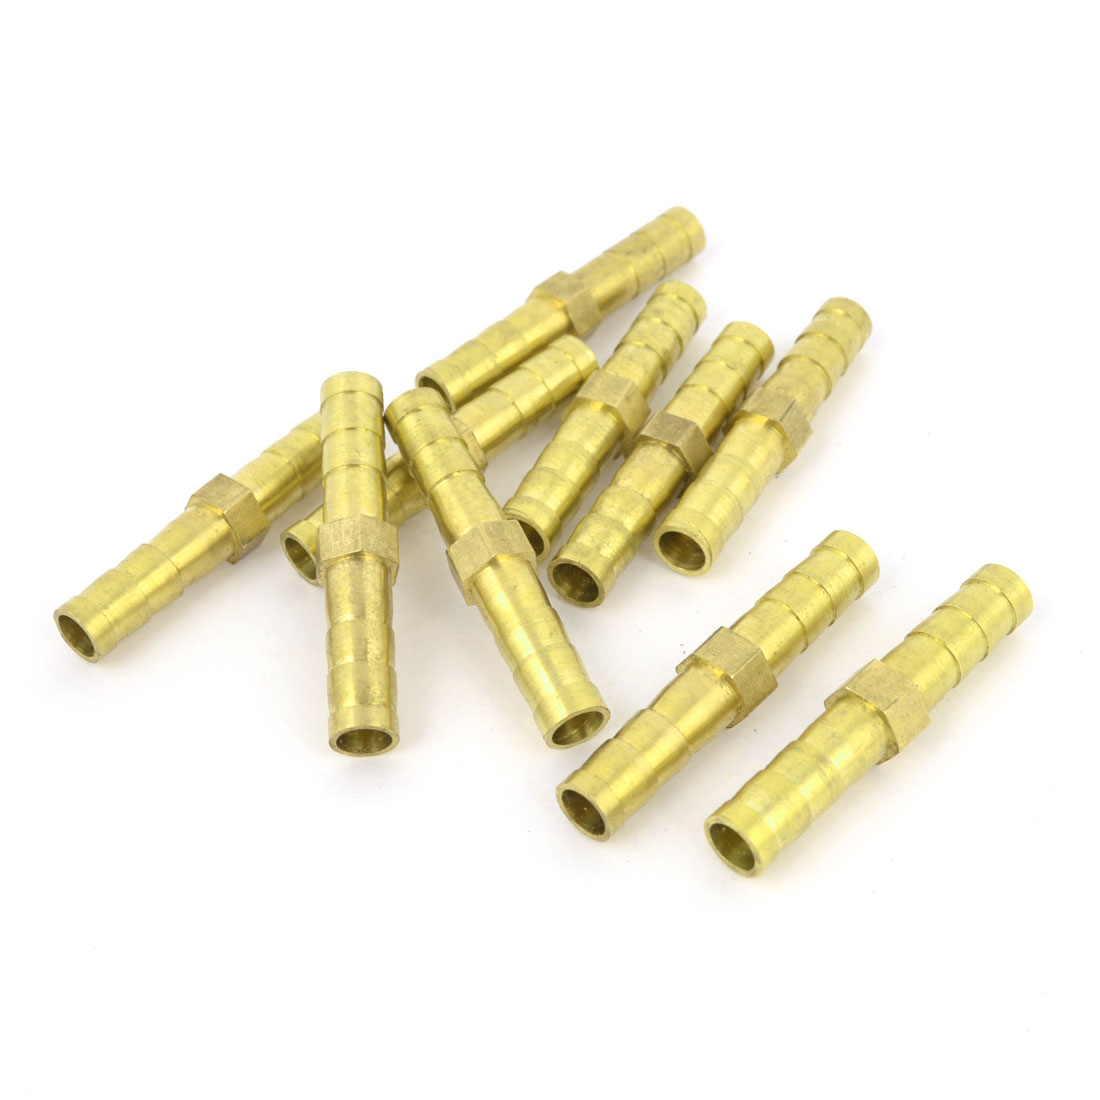 10pcs Brass 5mm Equal Straight Barb Fitting Adapter for Pneumatic Air Hose